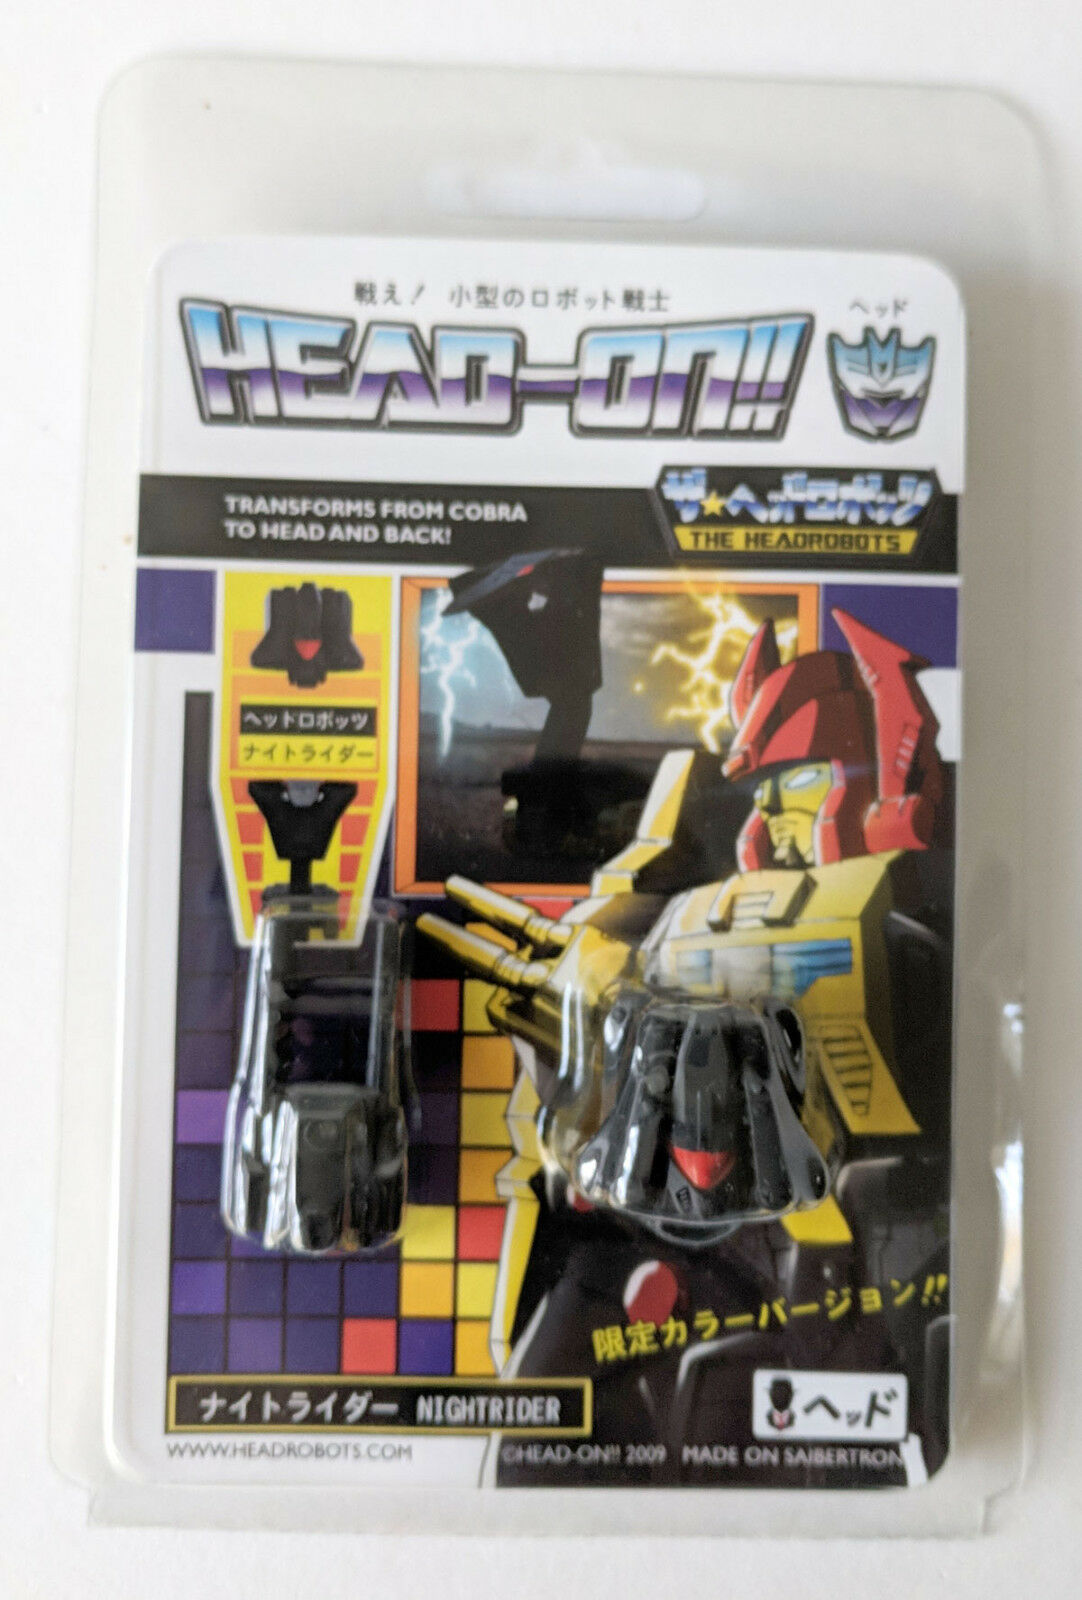 Transformers headmaster Headrobots 3rd party COBRA g1 Japanese RARE EXCLUSIVE